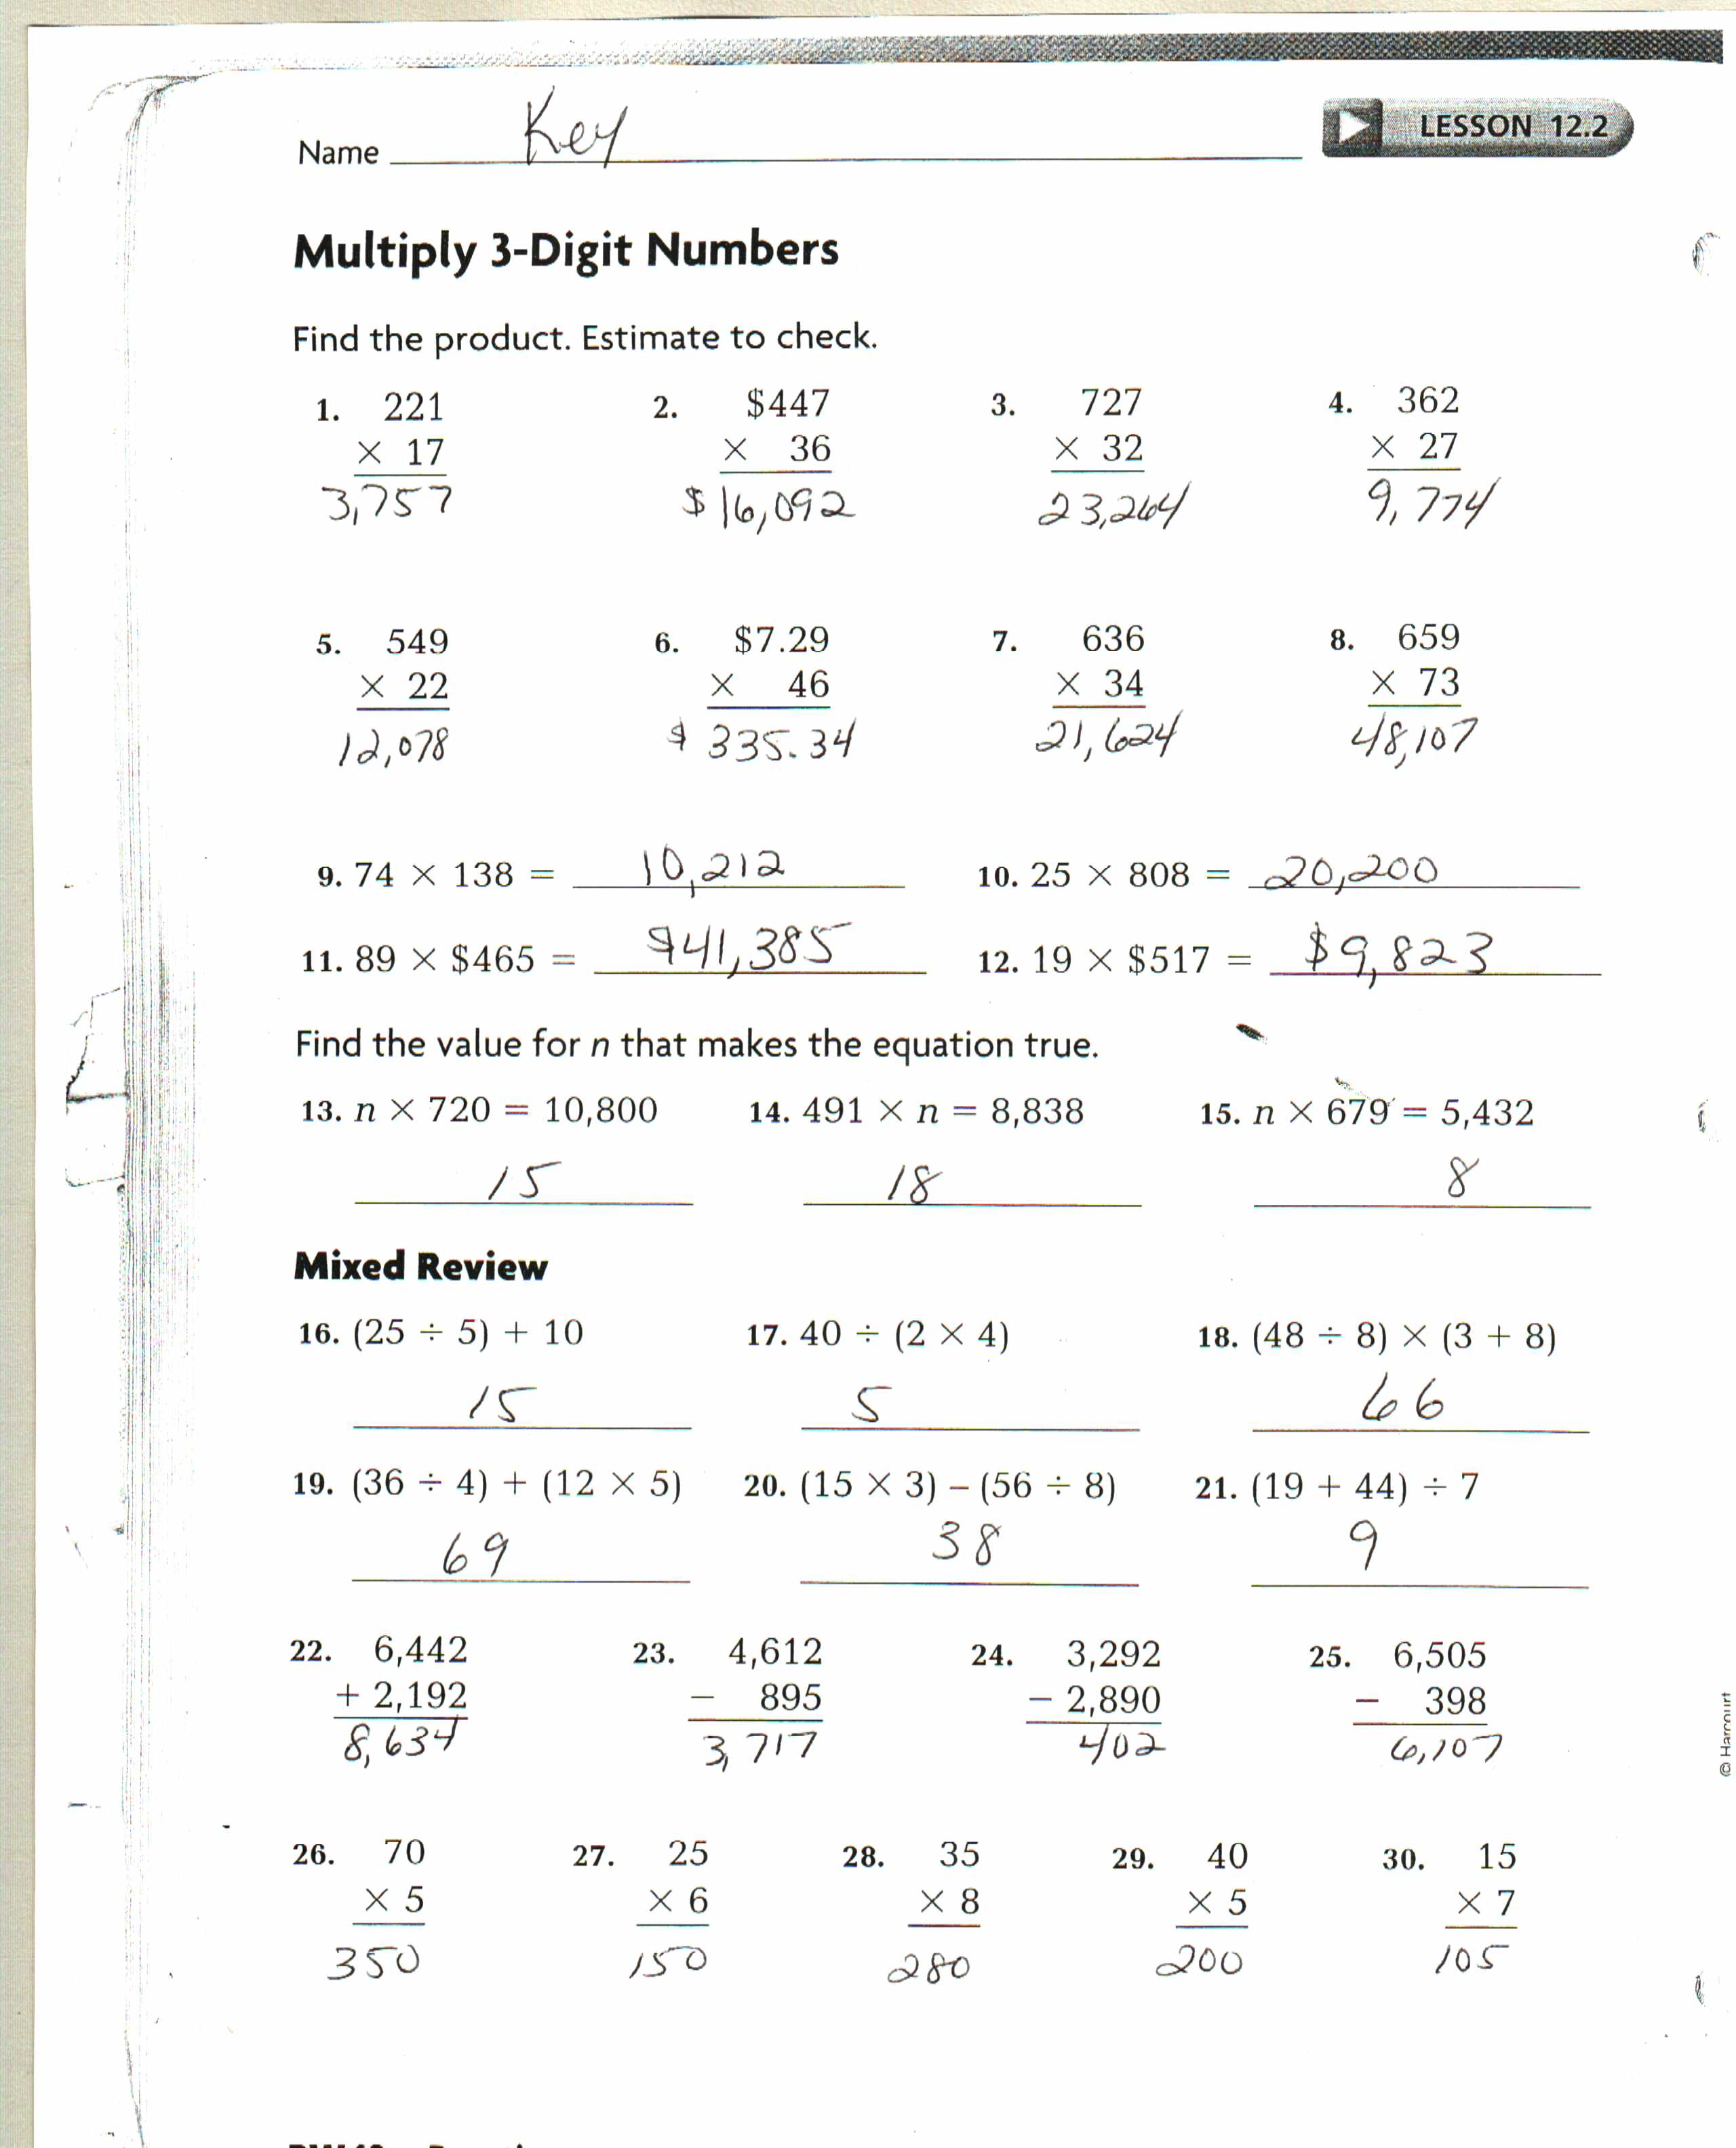 Worksheet Estimating Multiplication Worksheets Grass